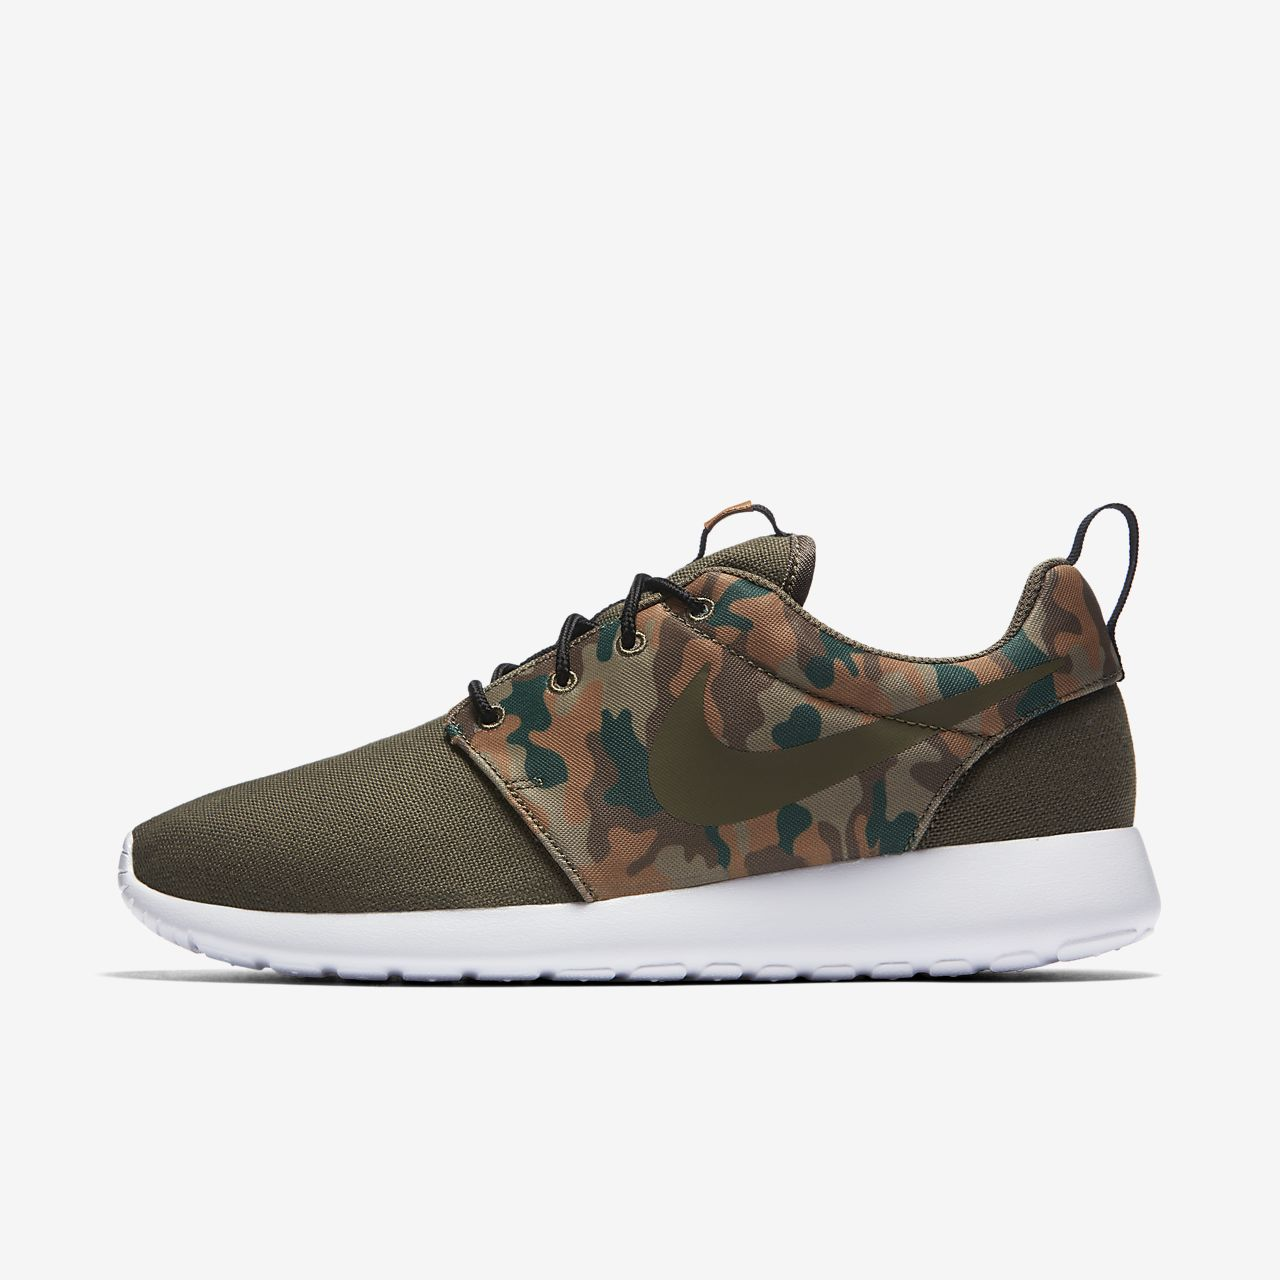 0d22240b361ce Nike Roshe One SE Men s Shoe. Nike.com